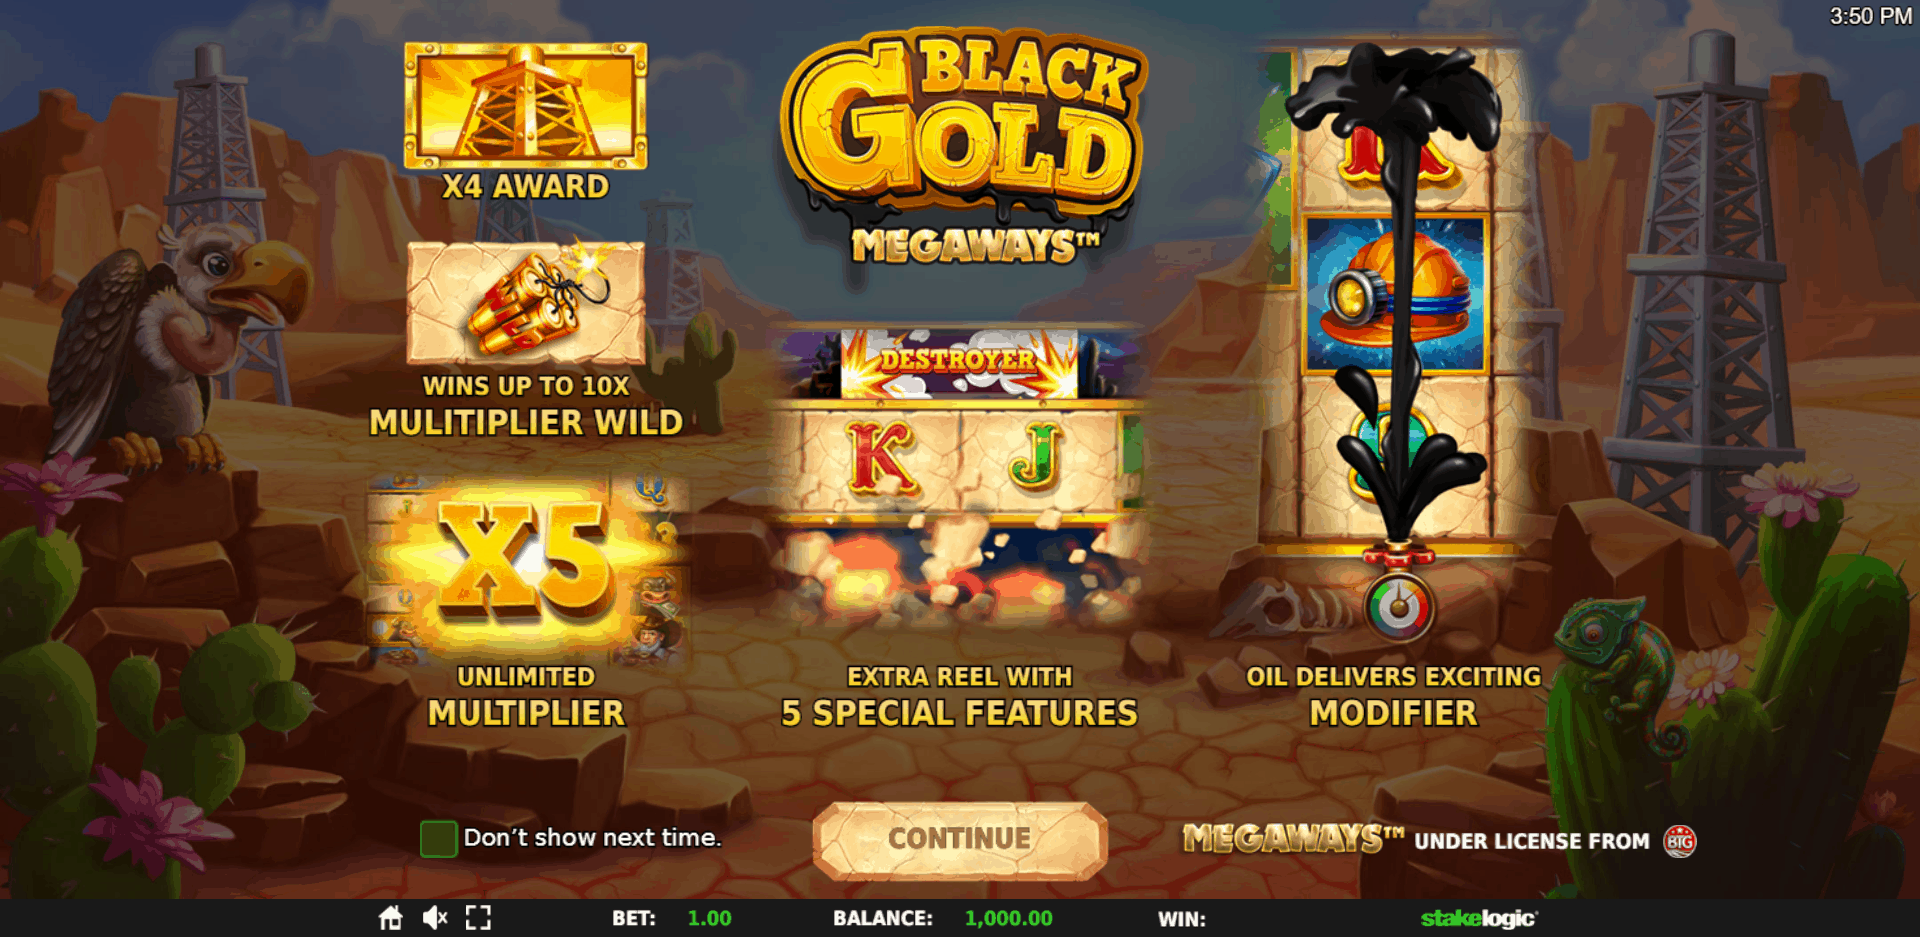 Play Black Gold Megaways for free in demo mode